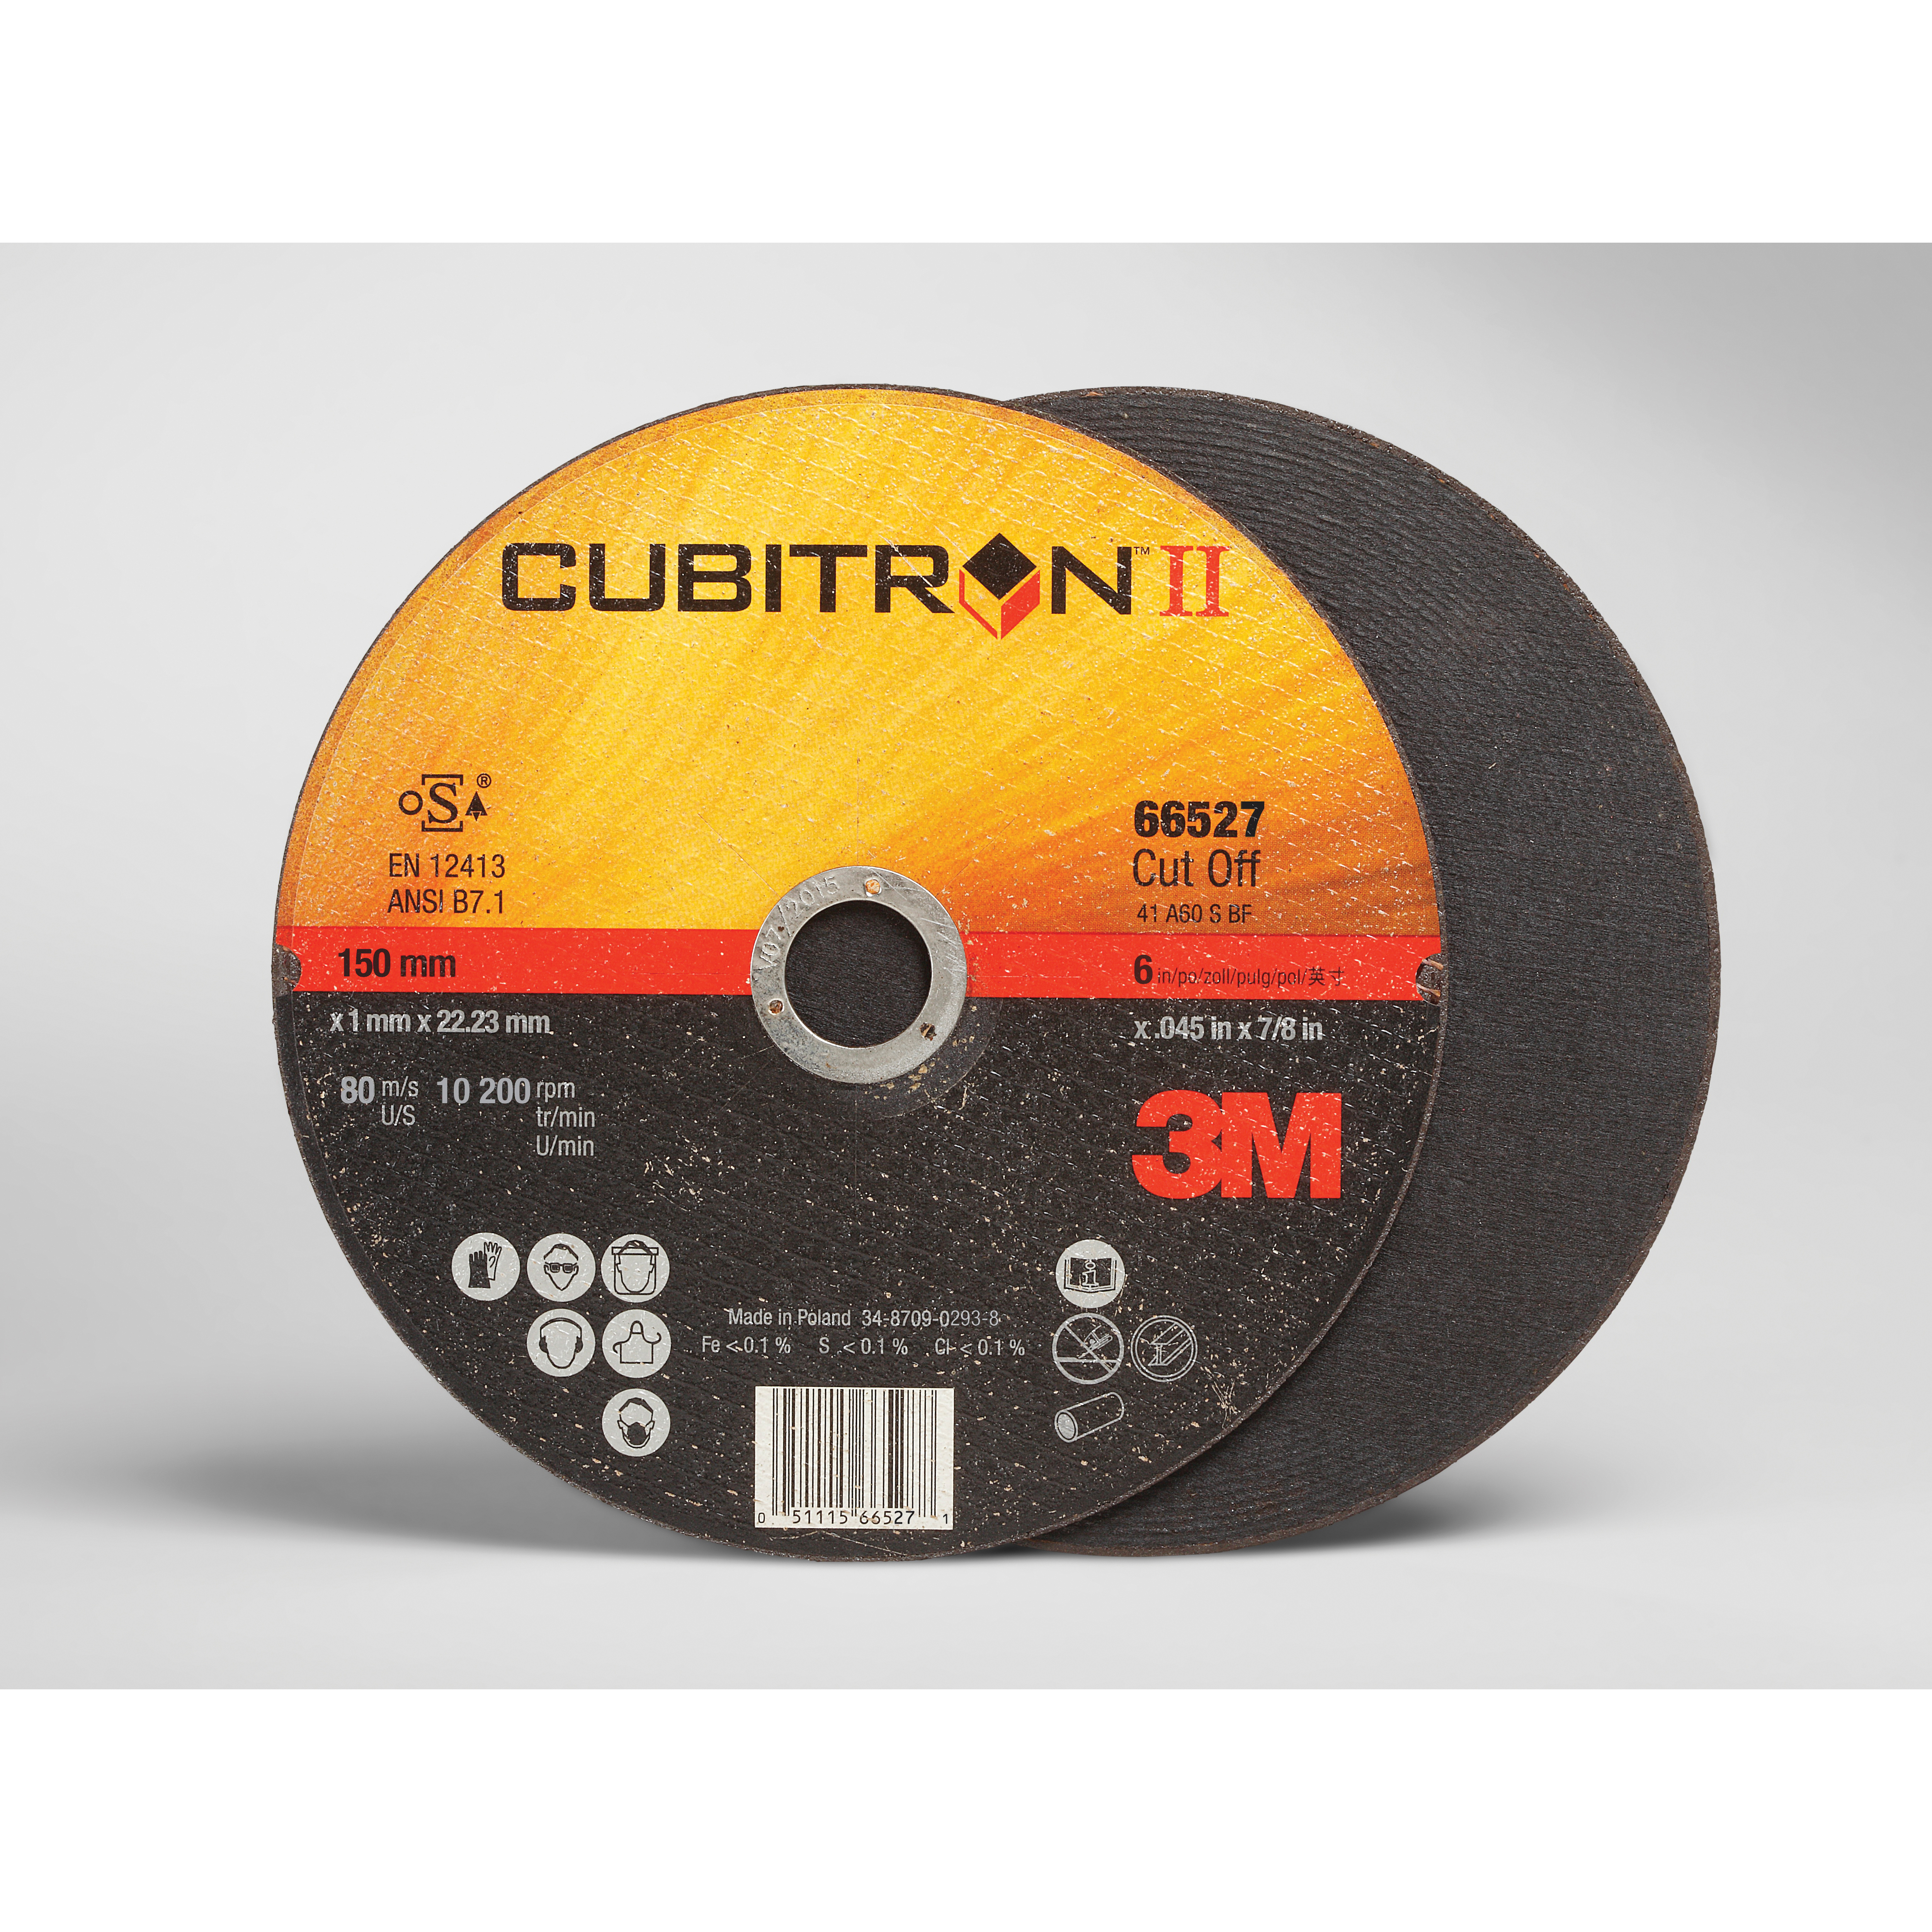 Cubitron™ II High Performance™ 051115-66526 COW Straight Cut-off Wheel, 5 in Dia x 0.045 in THK, 7/8 in Center Hole, 60 Grit, Ceramic Abrasive